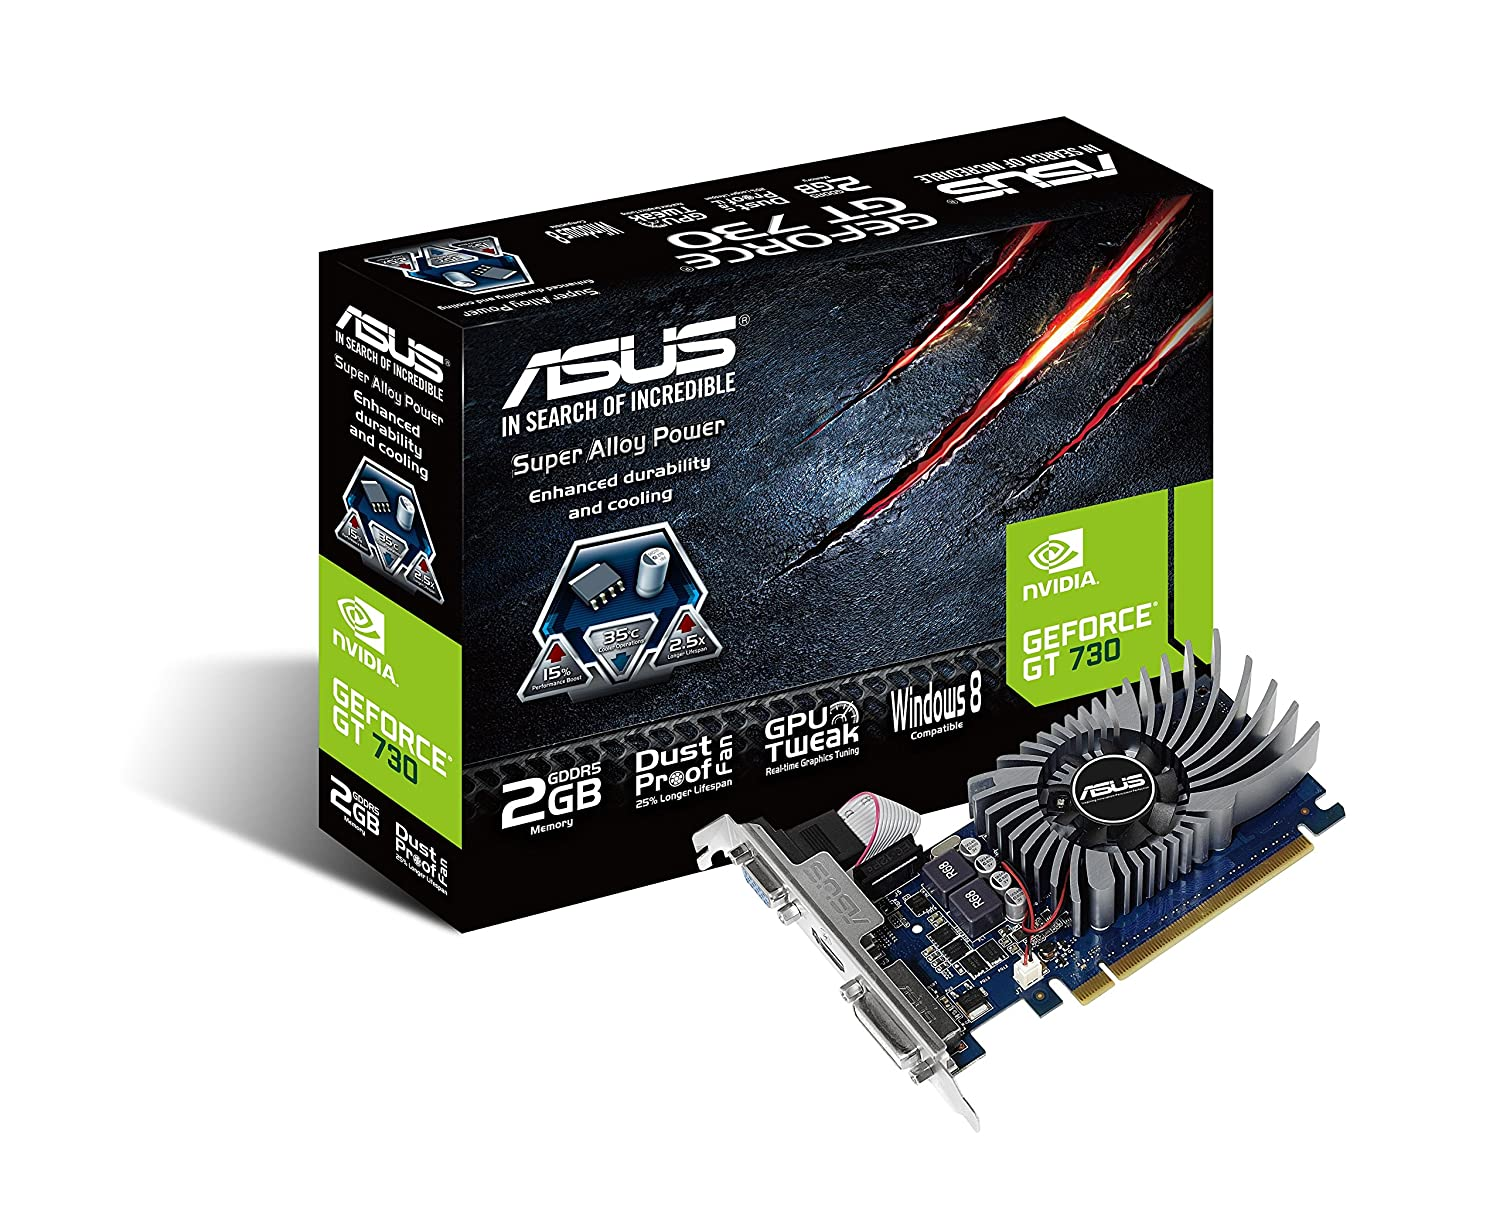 Asus GT730-2GD5-BRK GeForce GT 730 2GB GDDR5 Graphics Card